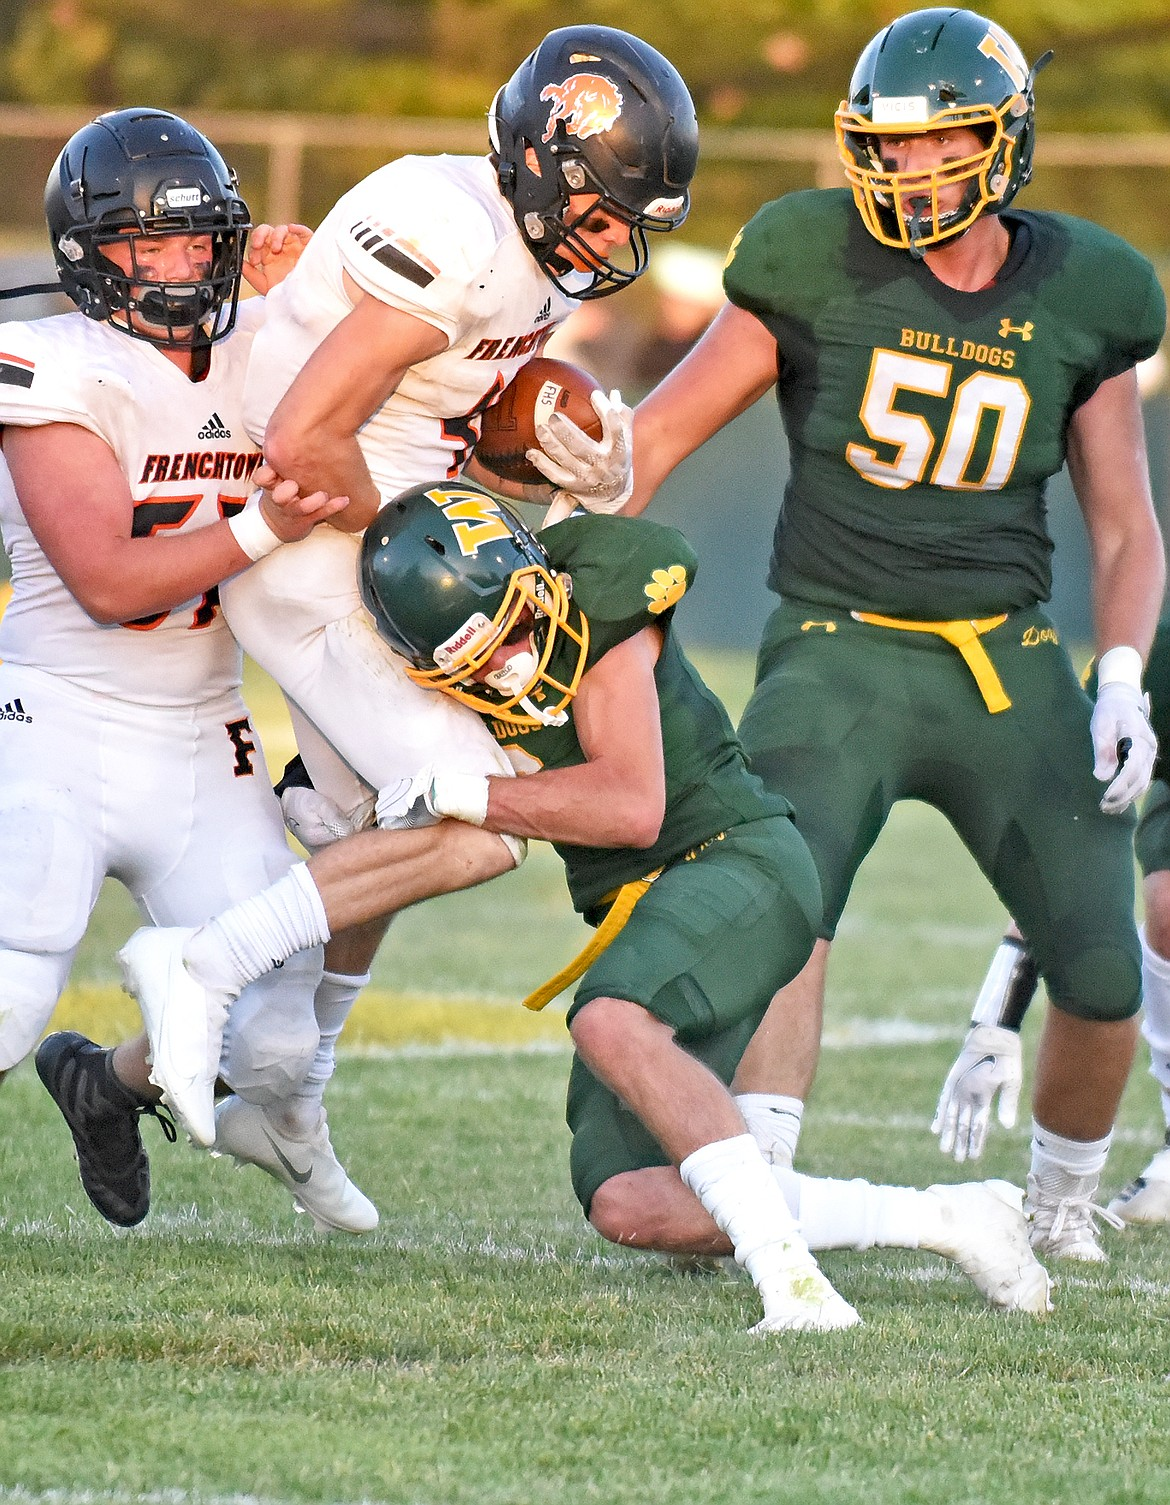 Bulldog Bodie Smith makes a defensive tackle against Frenchtown with support from teammate Talon Holmquist in a game on Friday in Whitefish. (Whitney England/Whitefish Pilot)